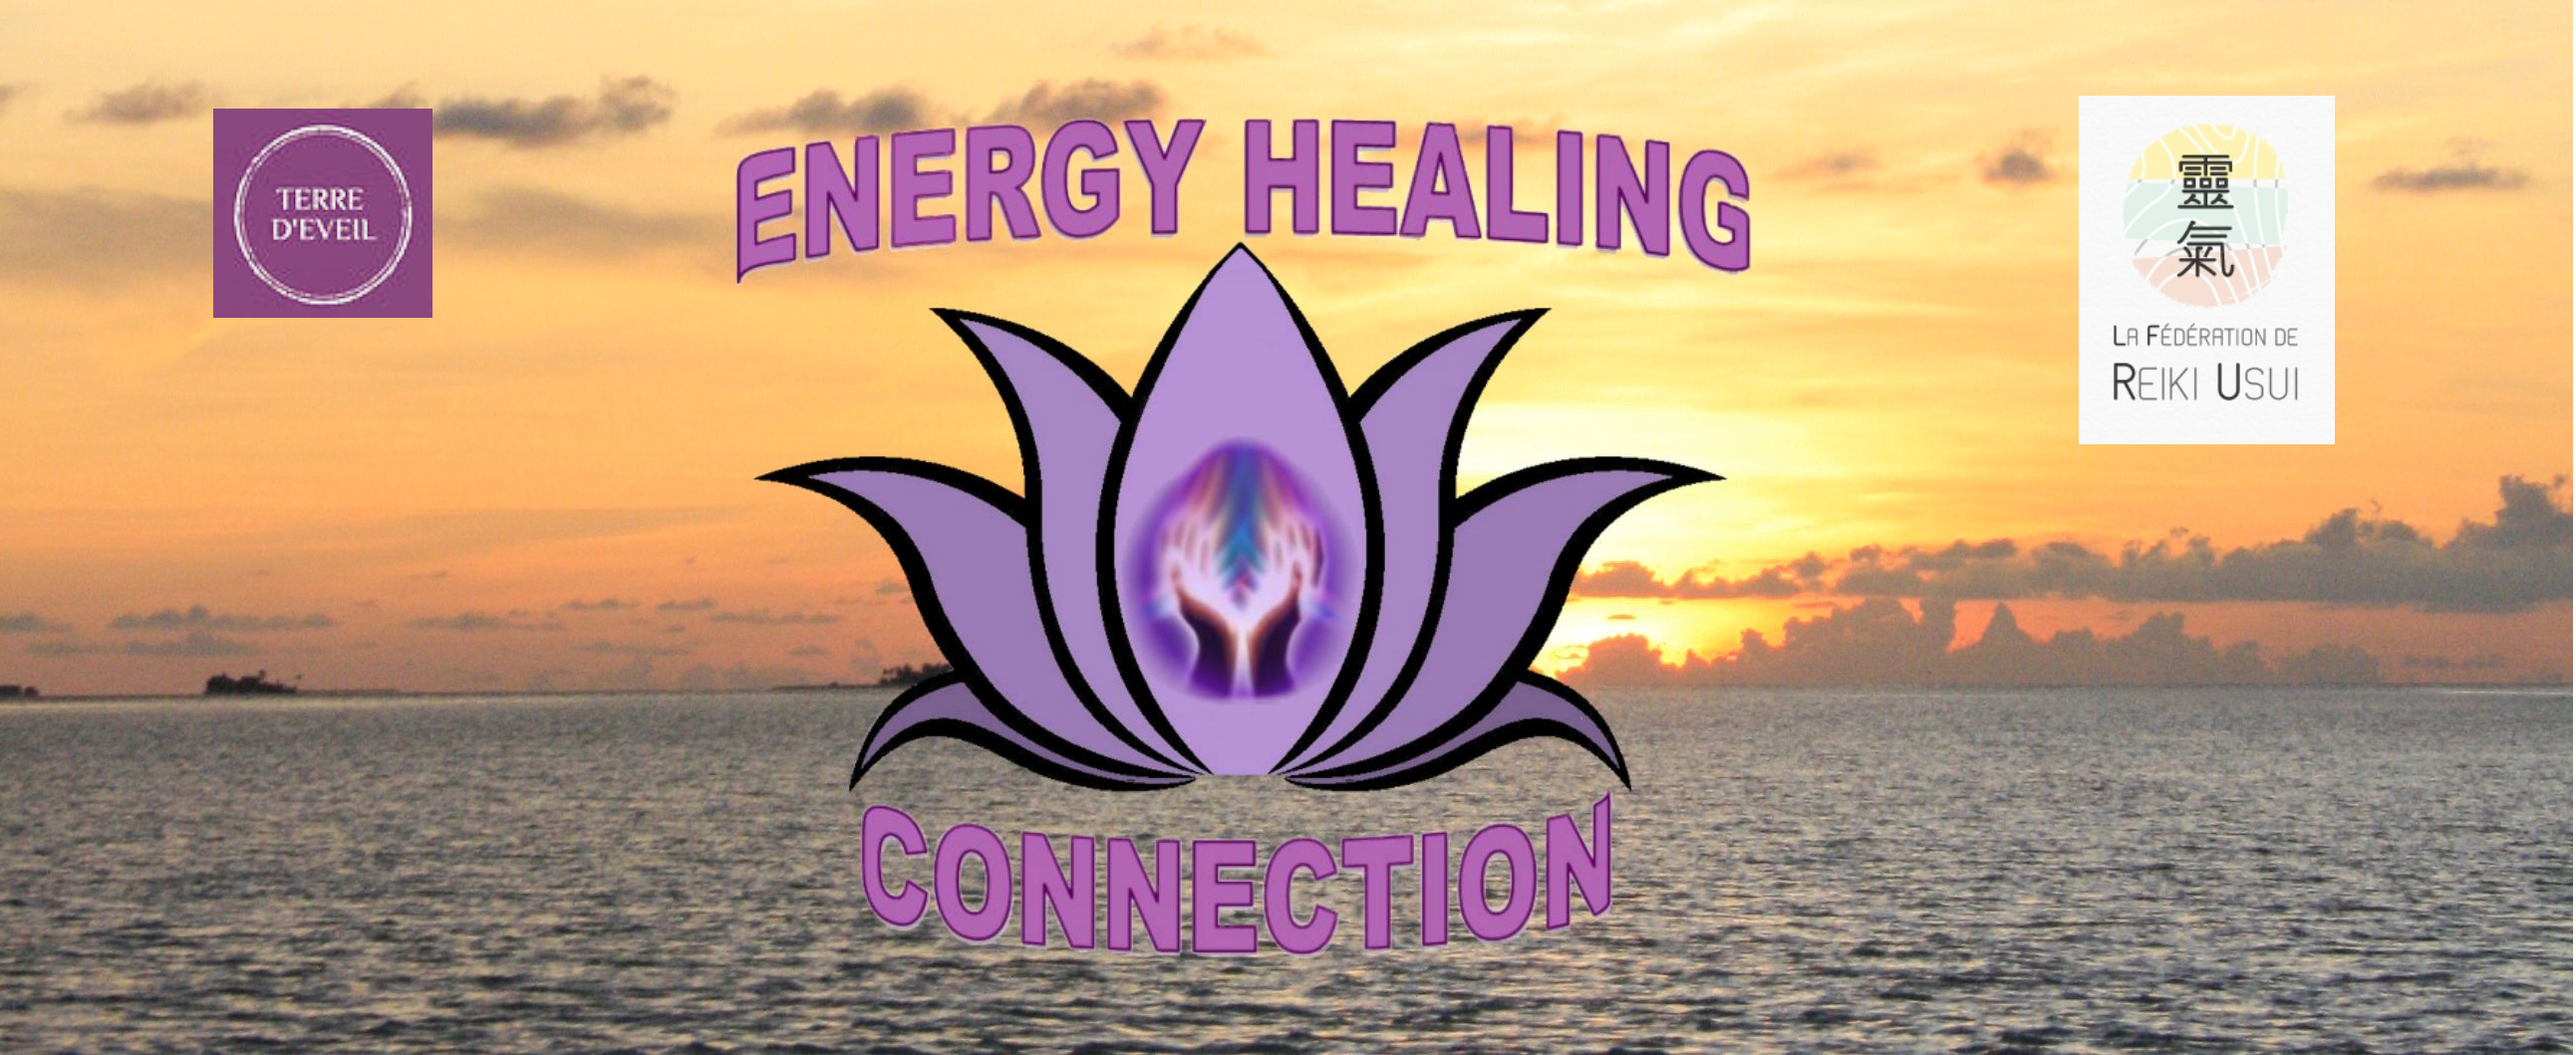 Energy Healing Connection